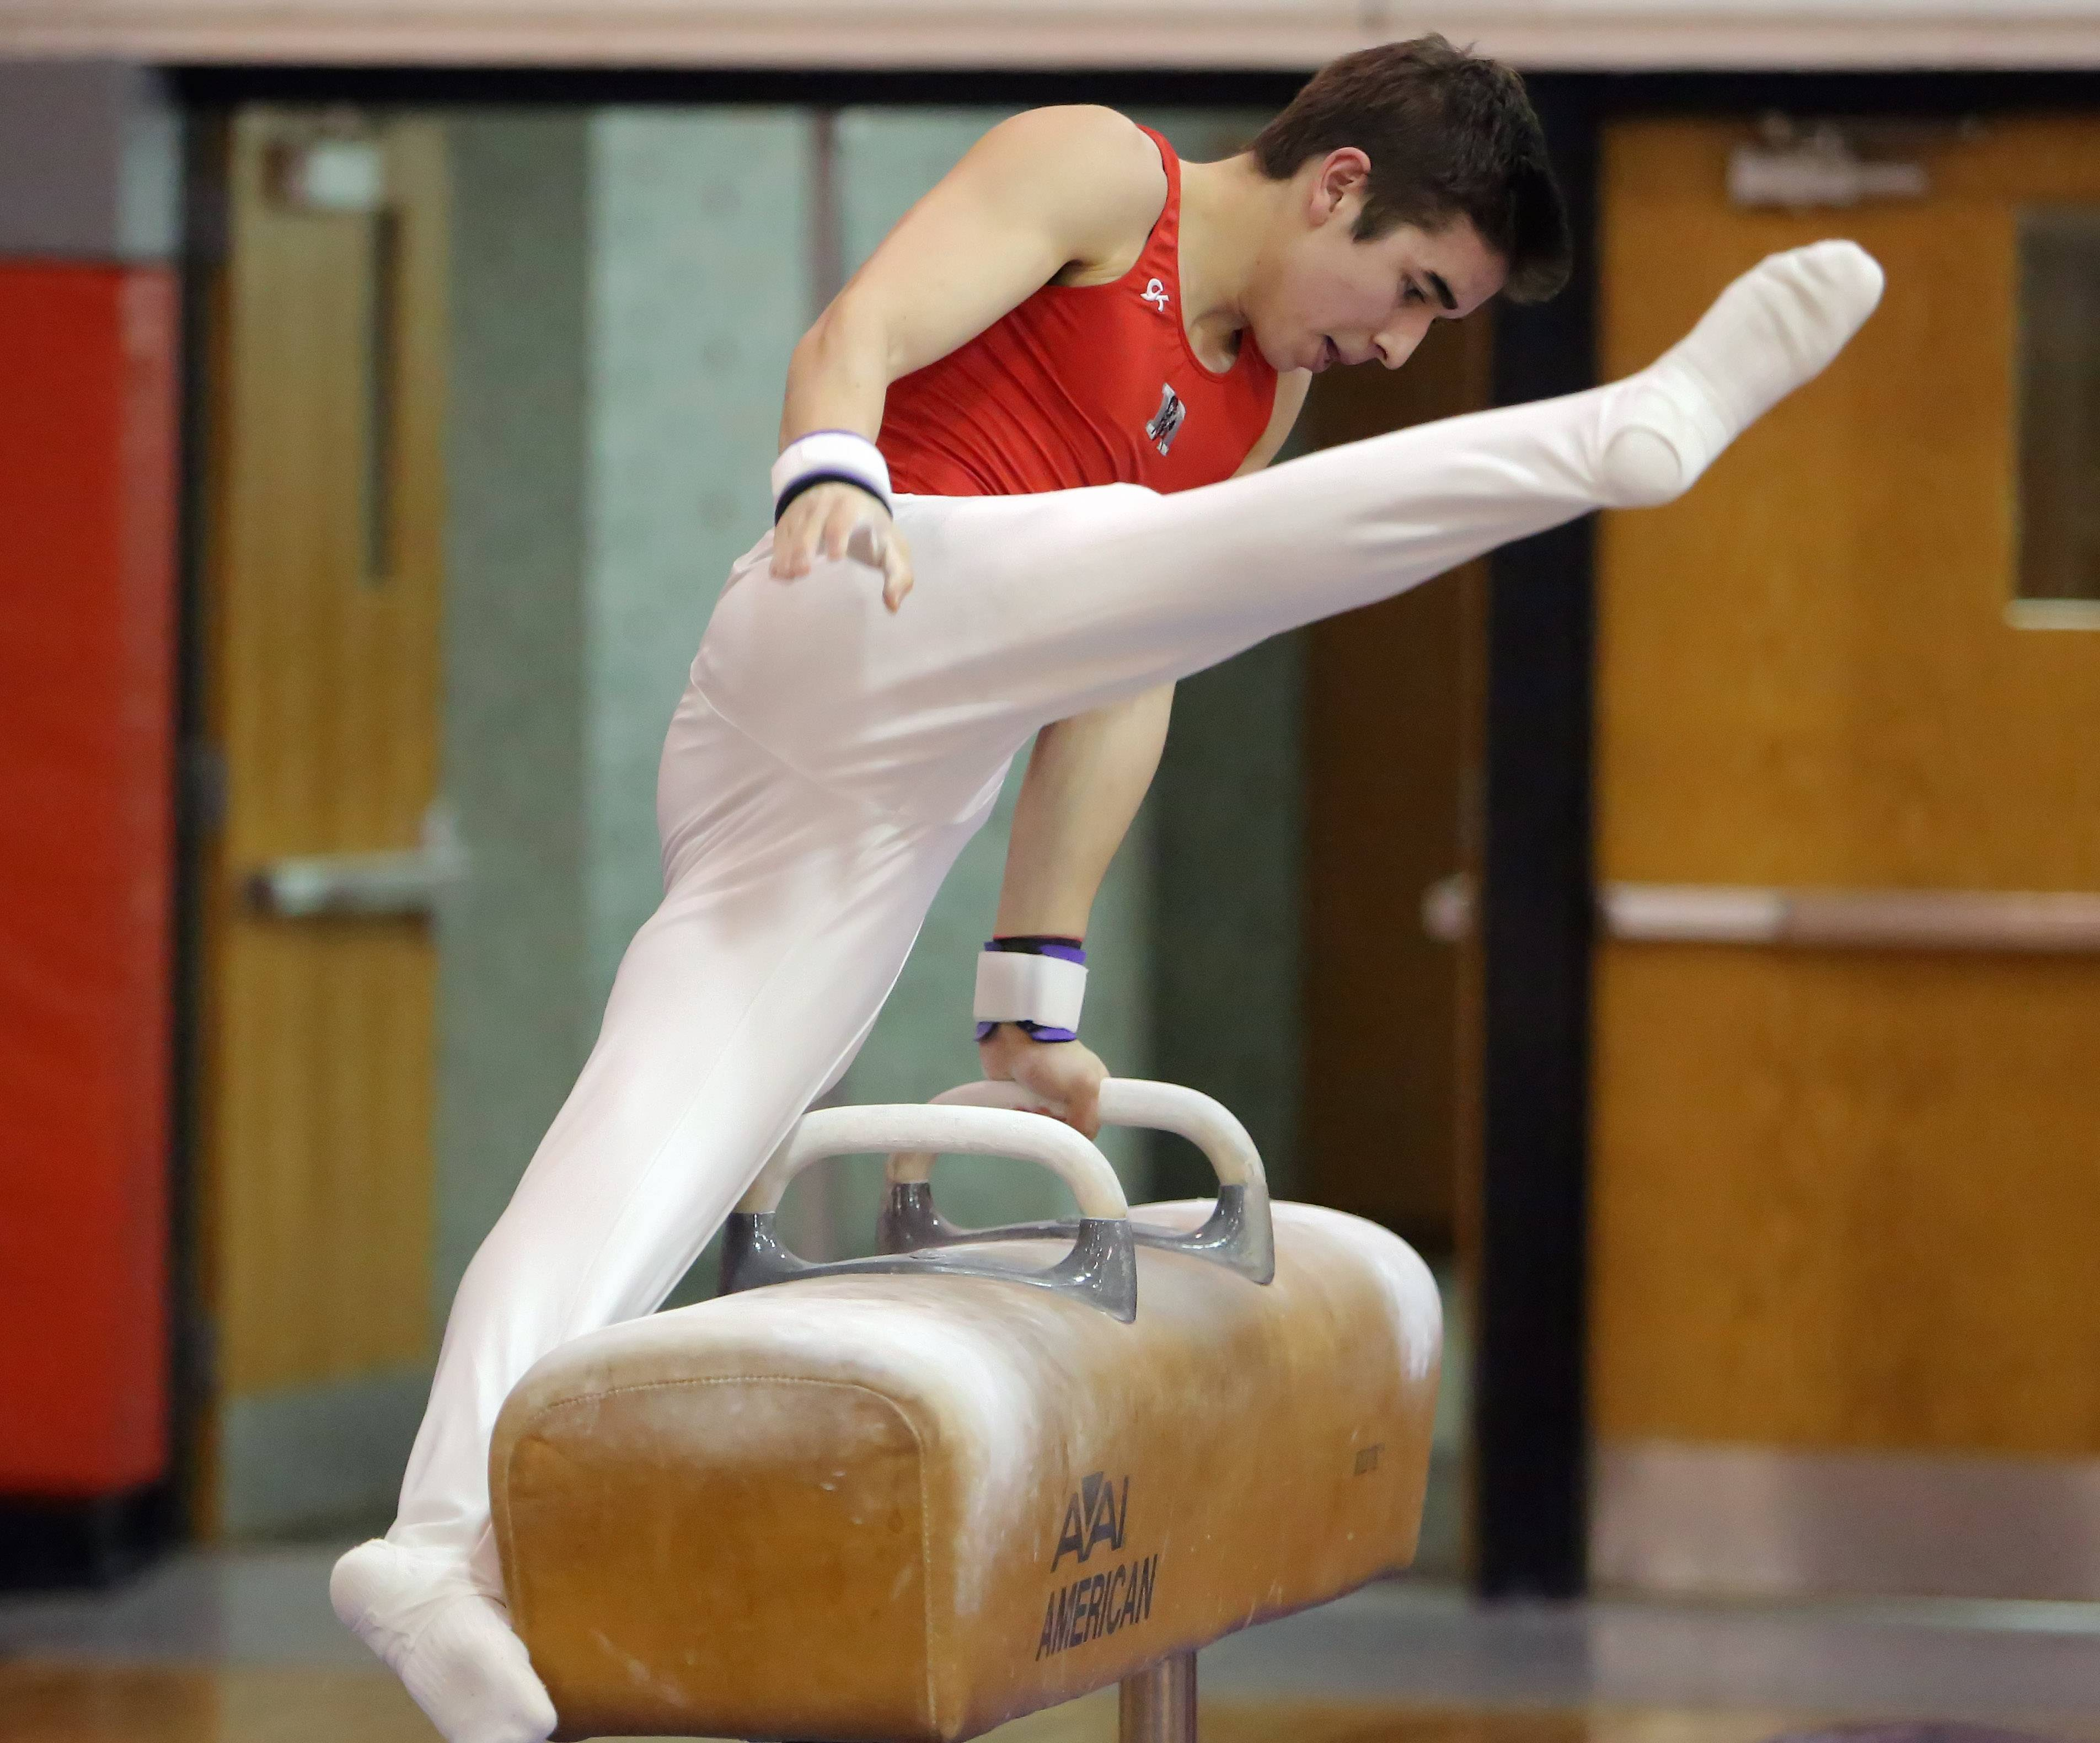 Mundelein's Colin McCarthy competes on the pommel horse during boys gymnastics action Wednesday night at Mundelein.